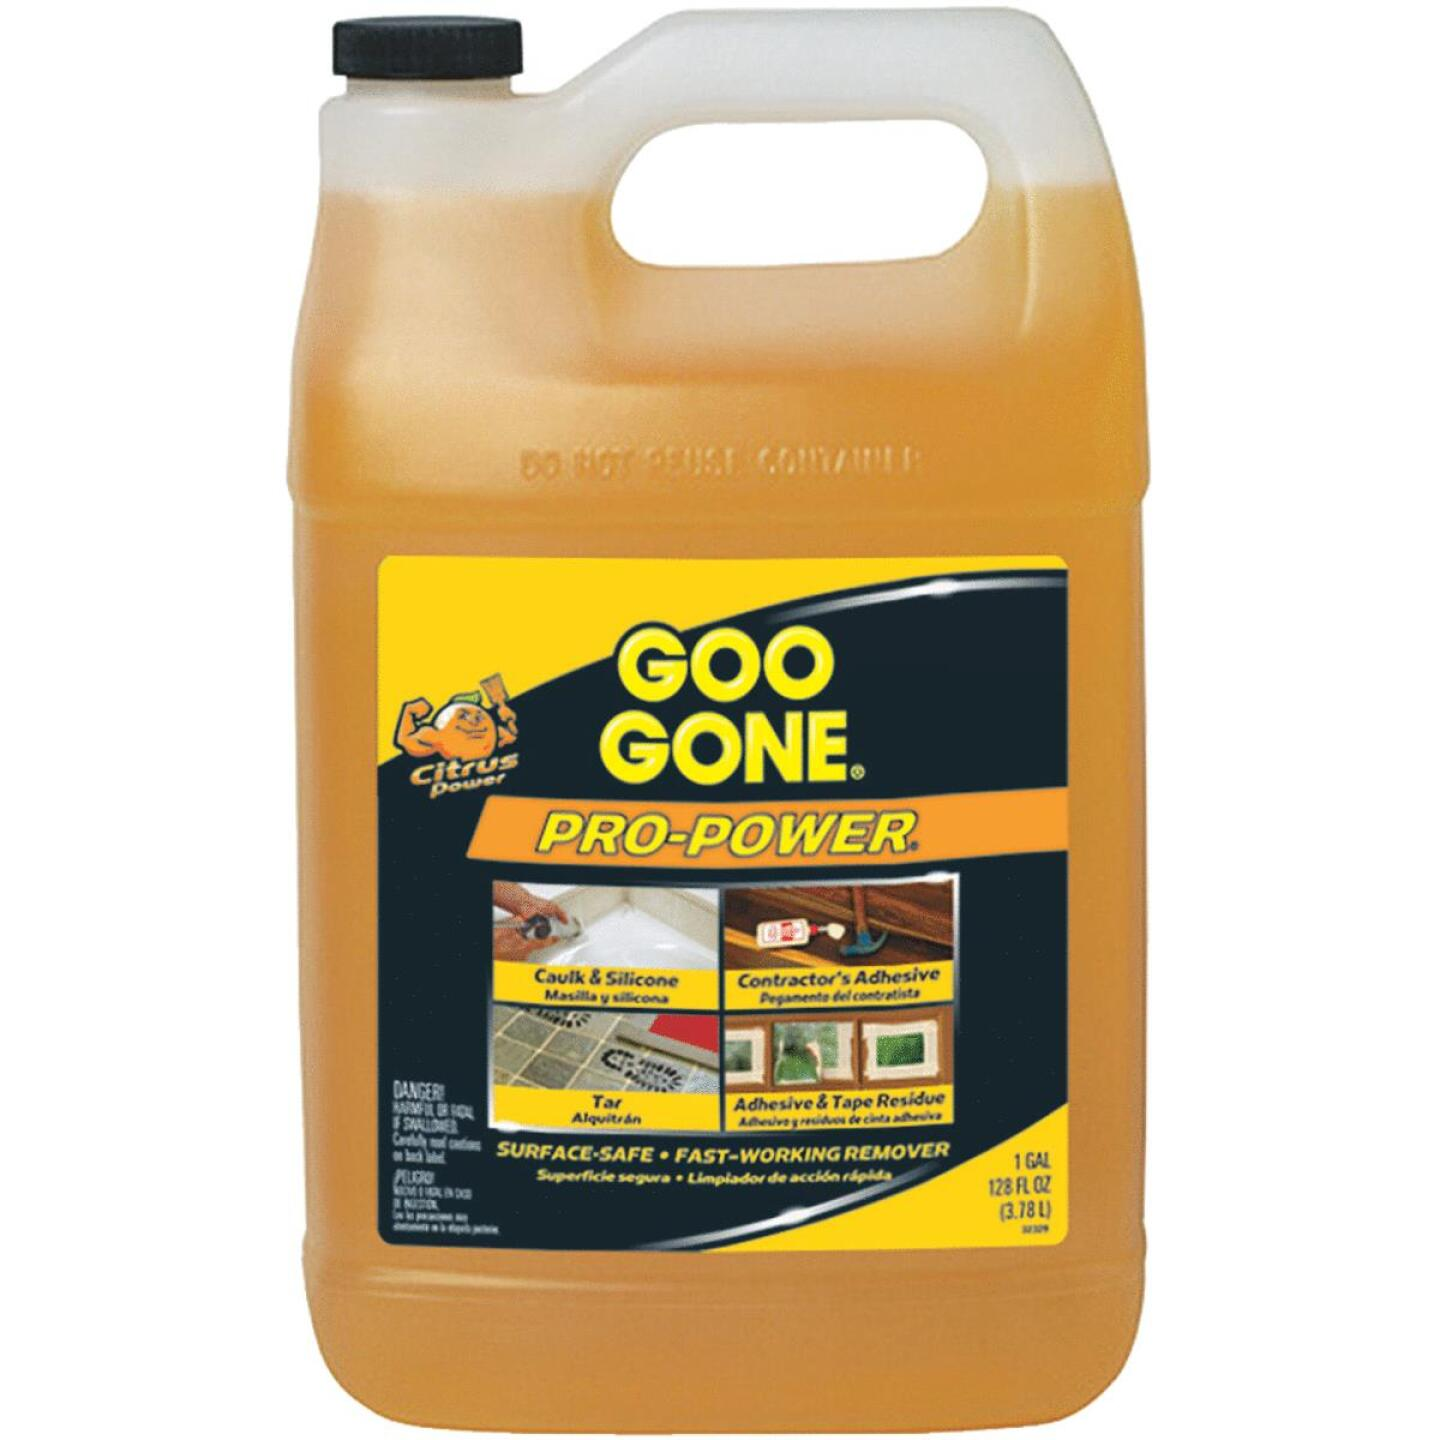 Goo Gone 1 Gal. Pro-Power Adhesive Remover Image 24